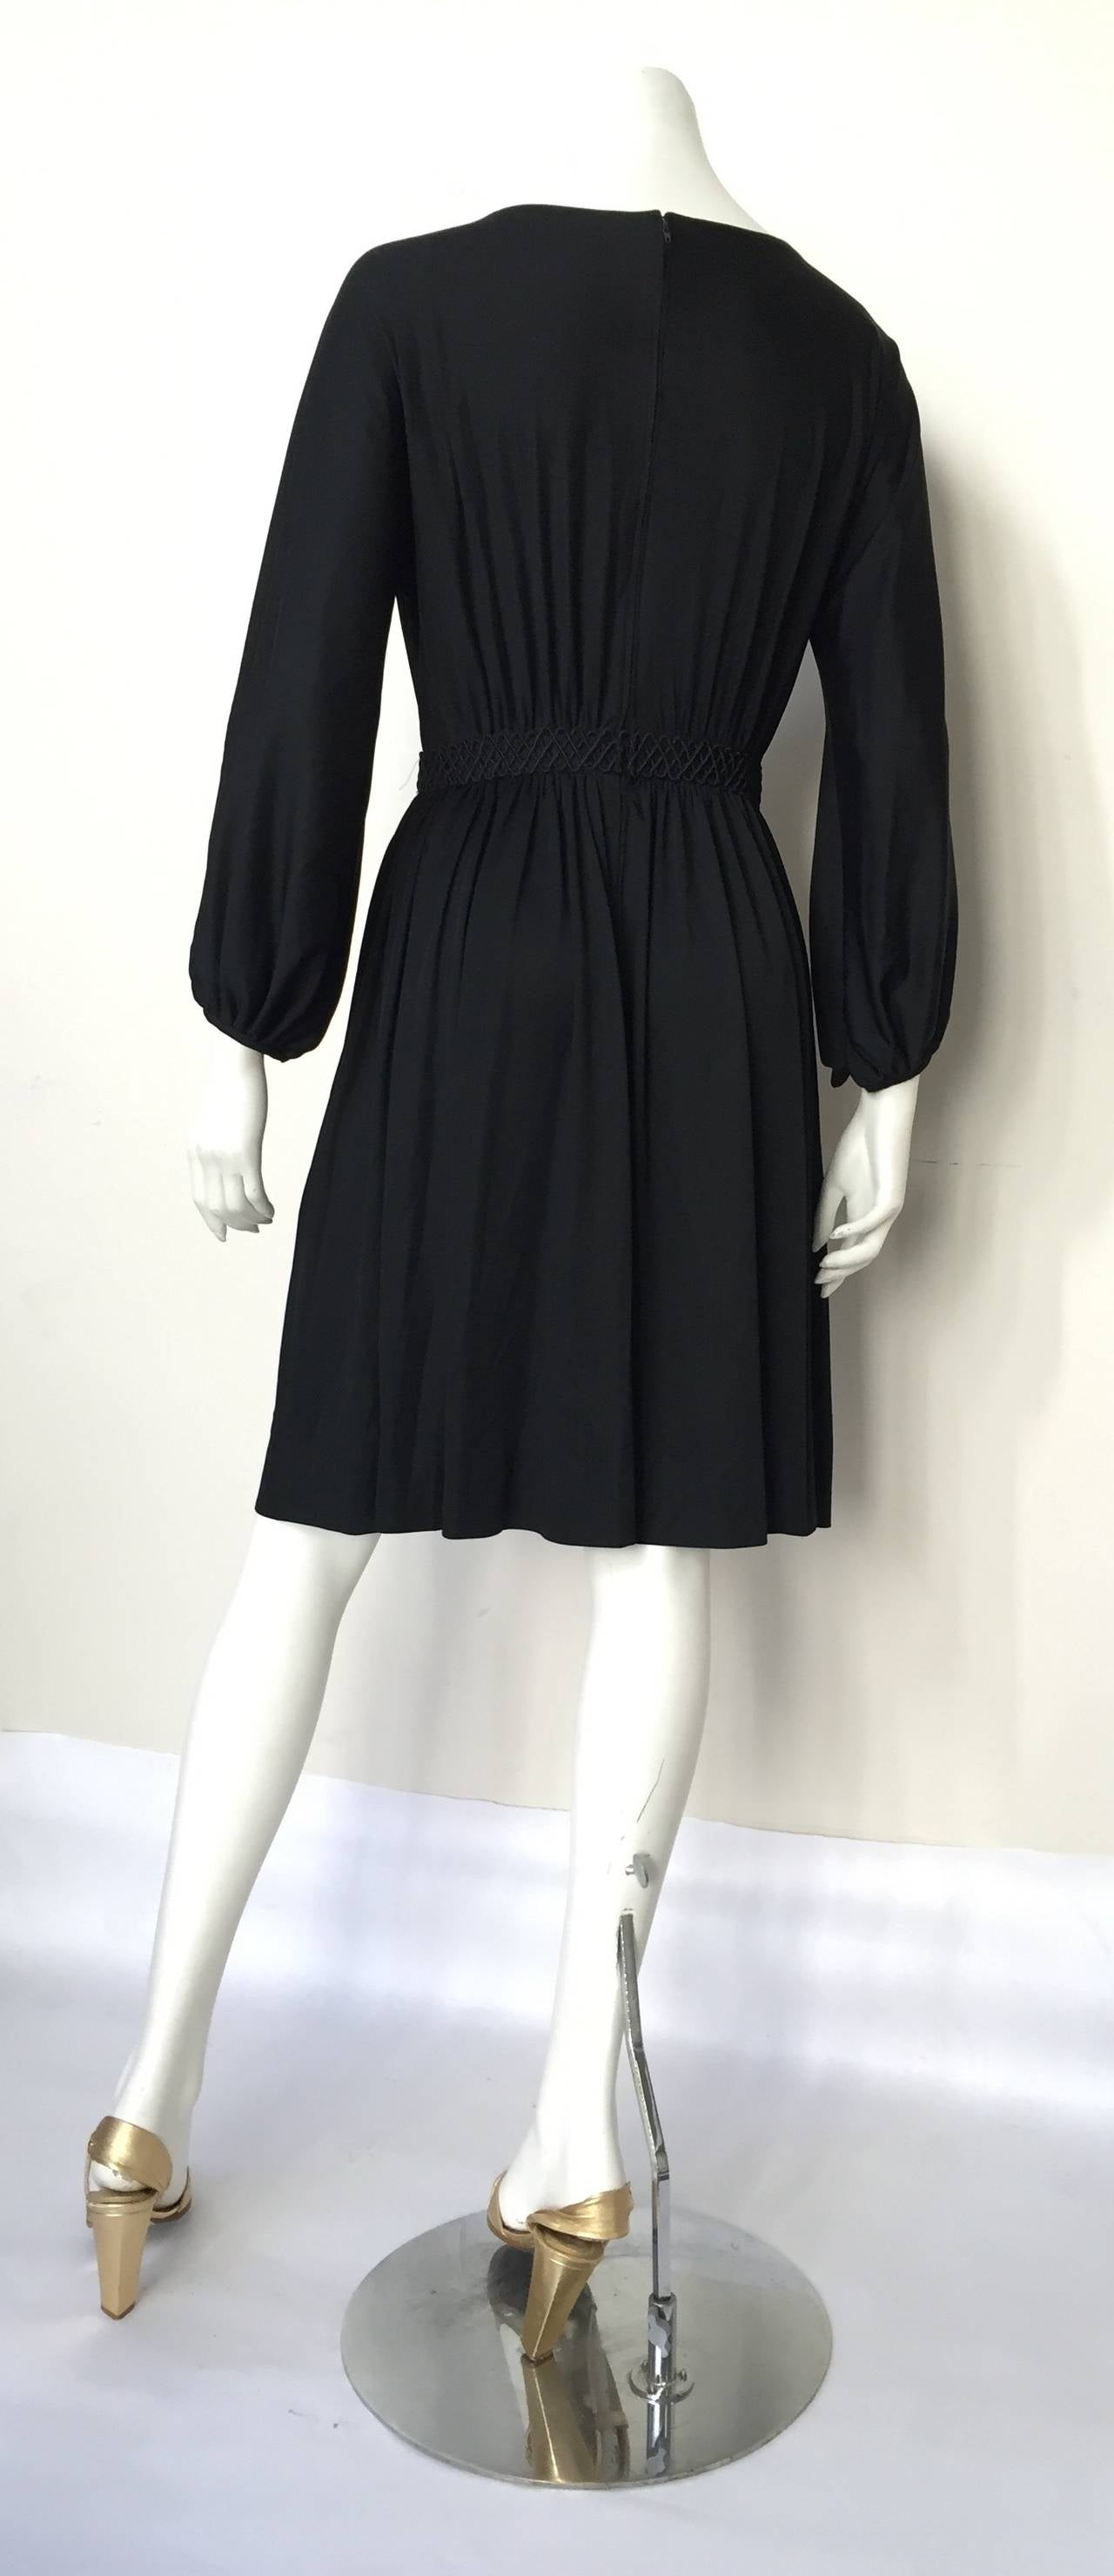 Donald Brooks 70s Black Dress With Pockets Size 6 For